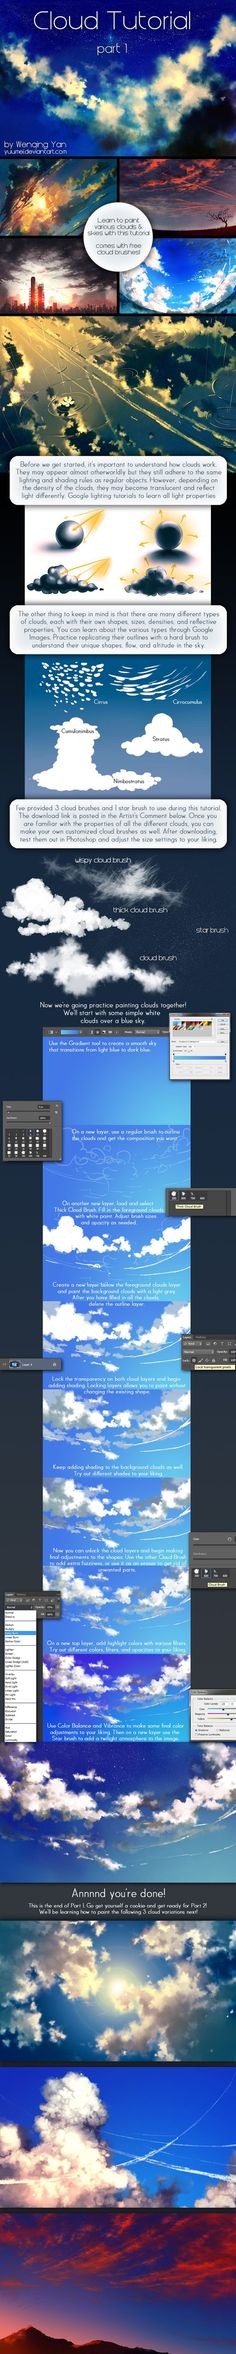 Cloud Tutorial Part 1 by yuumei.deviantart.com on @deviantART ✤ || CHARACTER DESIGN REFERENCES | キャラクターデザイン | çizgi film • Find more at https://www.facebook.com/CharacterDesignReferences & http://www.pinterest.com/characterdesigh if you're looking for: bandes dessinées, dessin animé #animation #banda #desenhada #toons #manga #BD #historieta #sketch #how #to #draw #strip #fumetto #settei #fumetti #manhwa #anime #cartoni #animati #comics #cartoon || ✤: